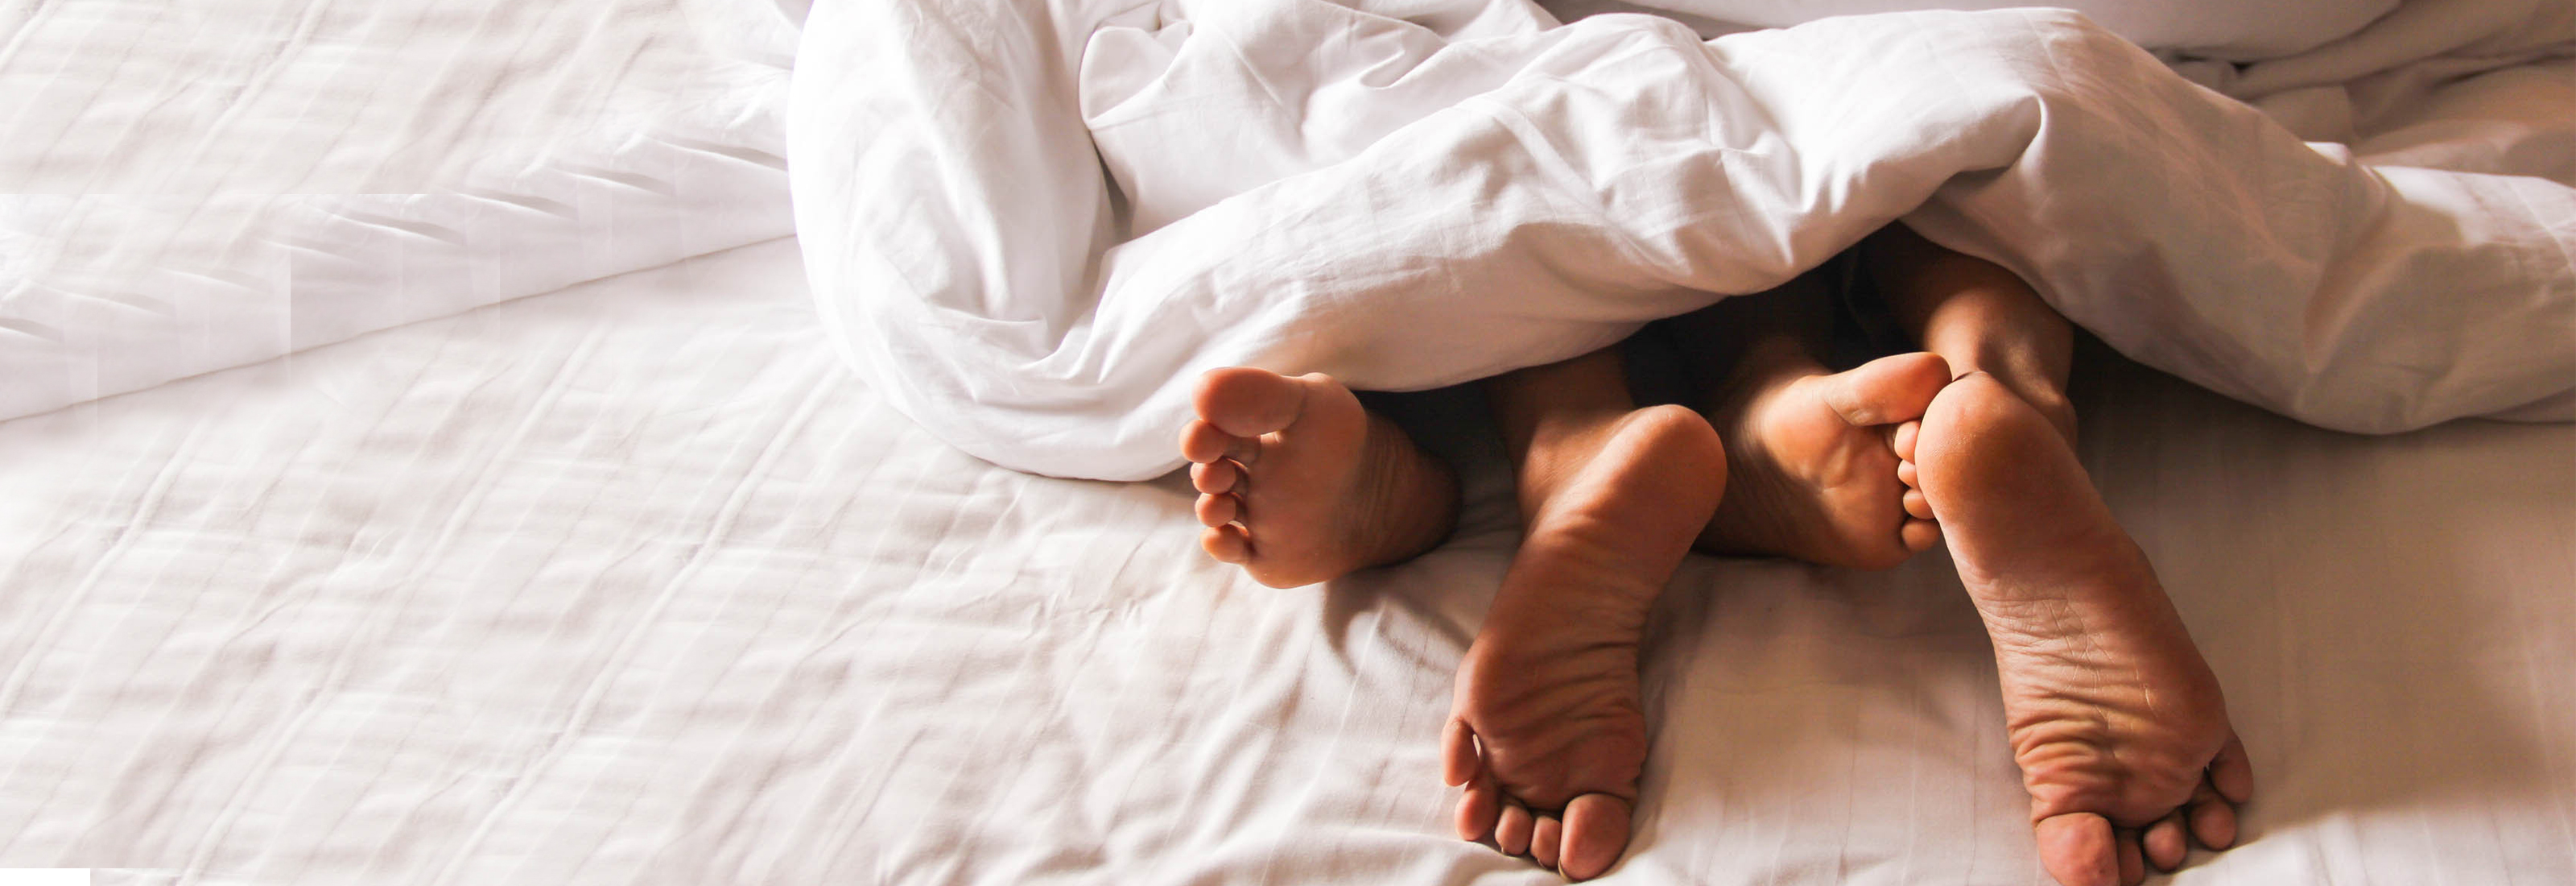 couples feet from blankets